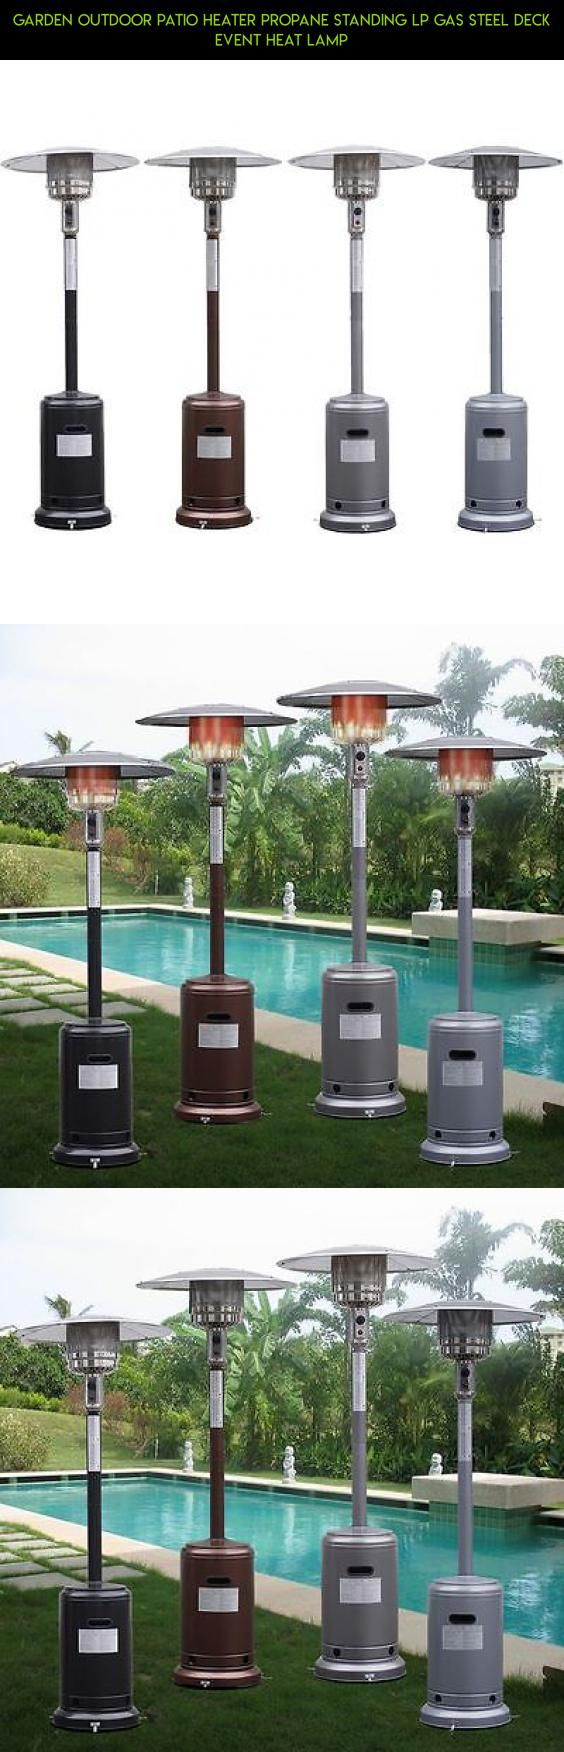 Garden Outdoor Patio Heater Propane Standing LP Gas Steel deck event Heat lamp #products #lamp #heating #racing #parts #plans #drone #gadgets #camera #shopping #tech #kit #fpv #technology